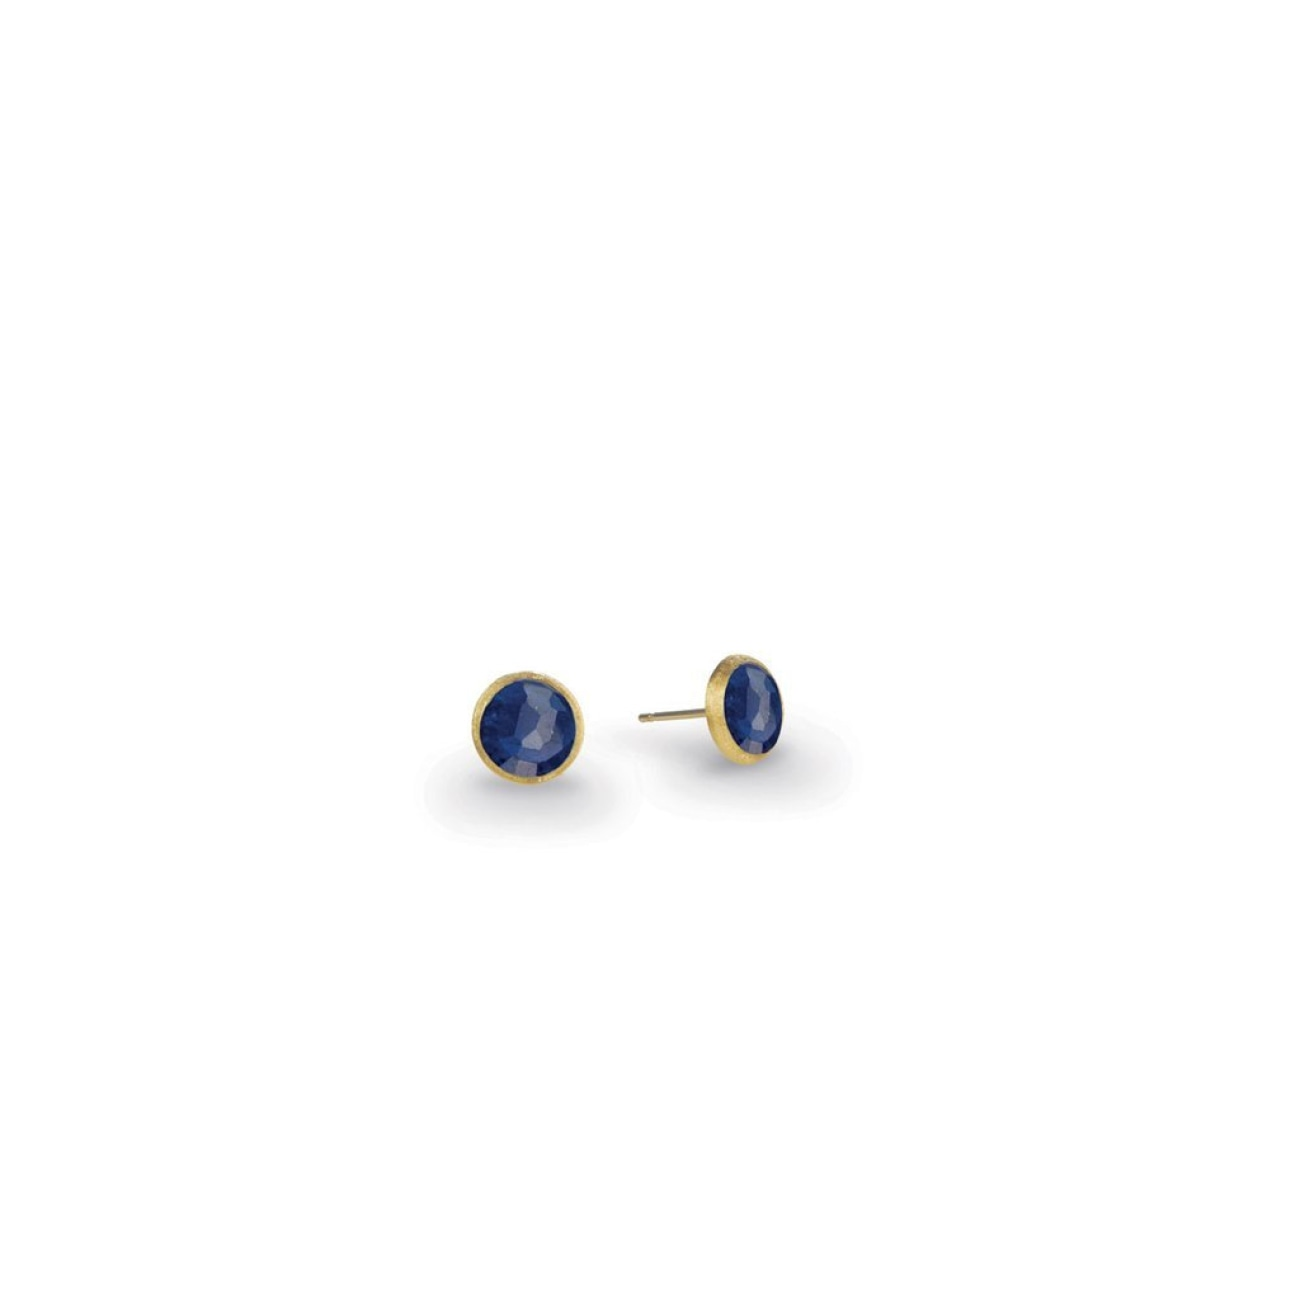 Marco Bicego Jewelry - 18K Yellow Gold & Lapis Petite Stud Earrings | Manfredi Jewels